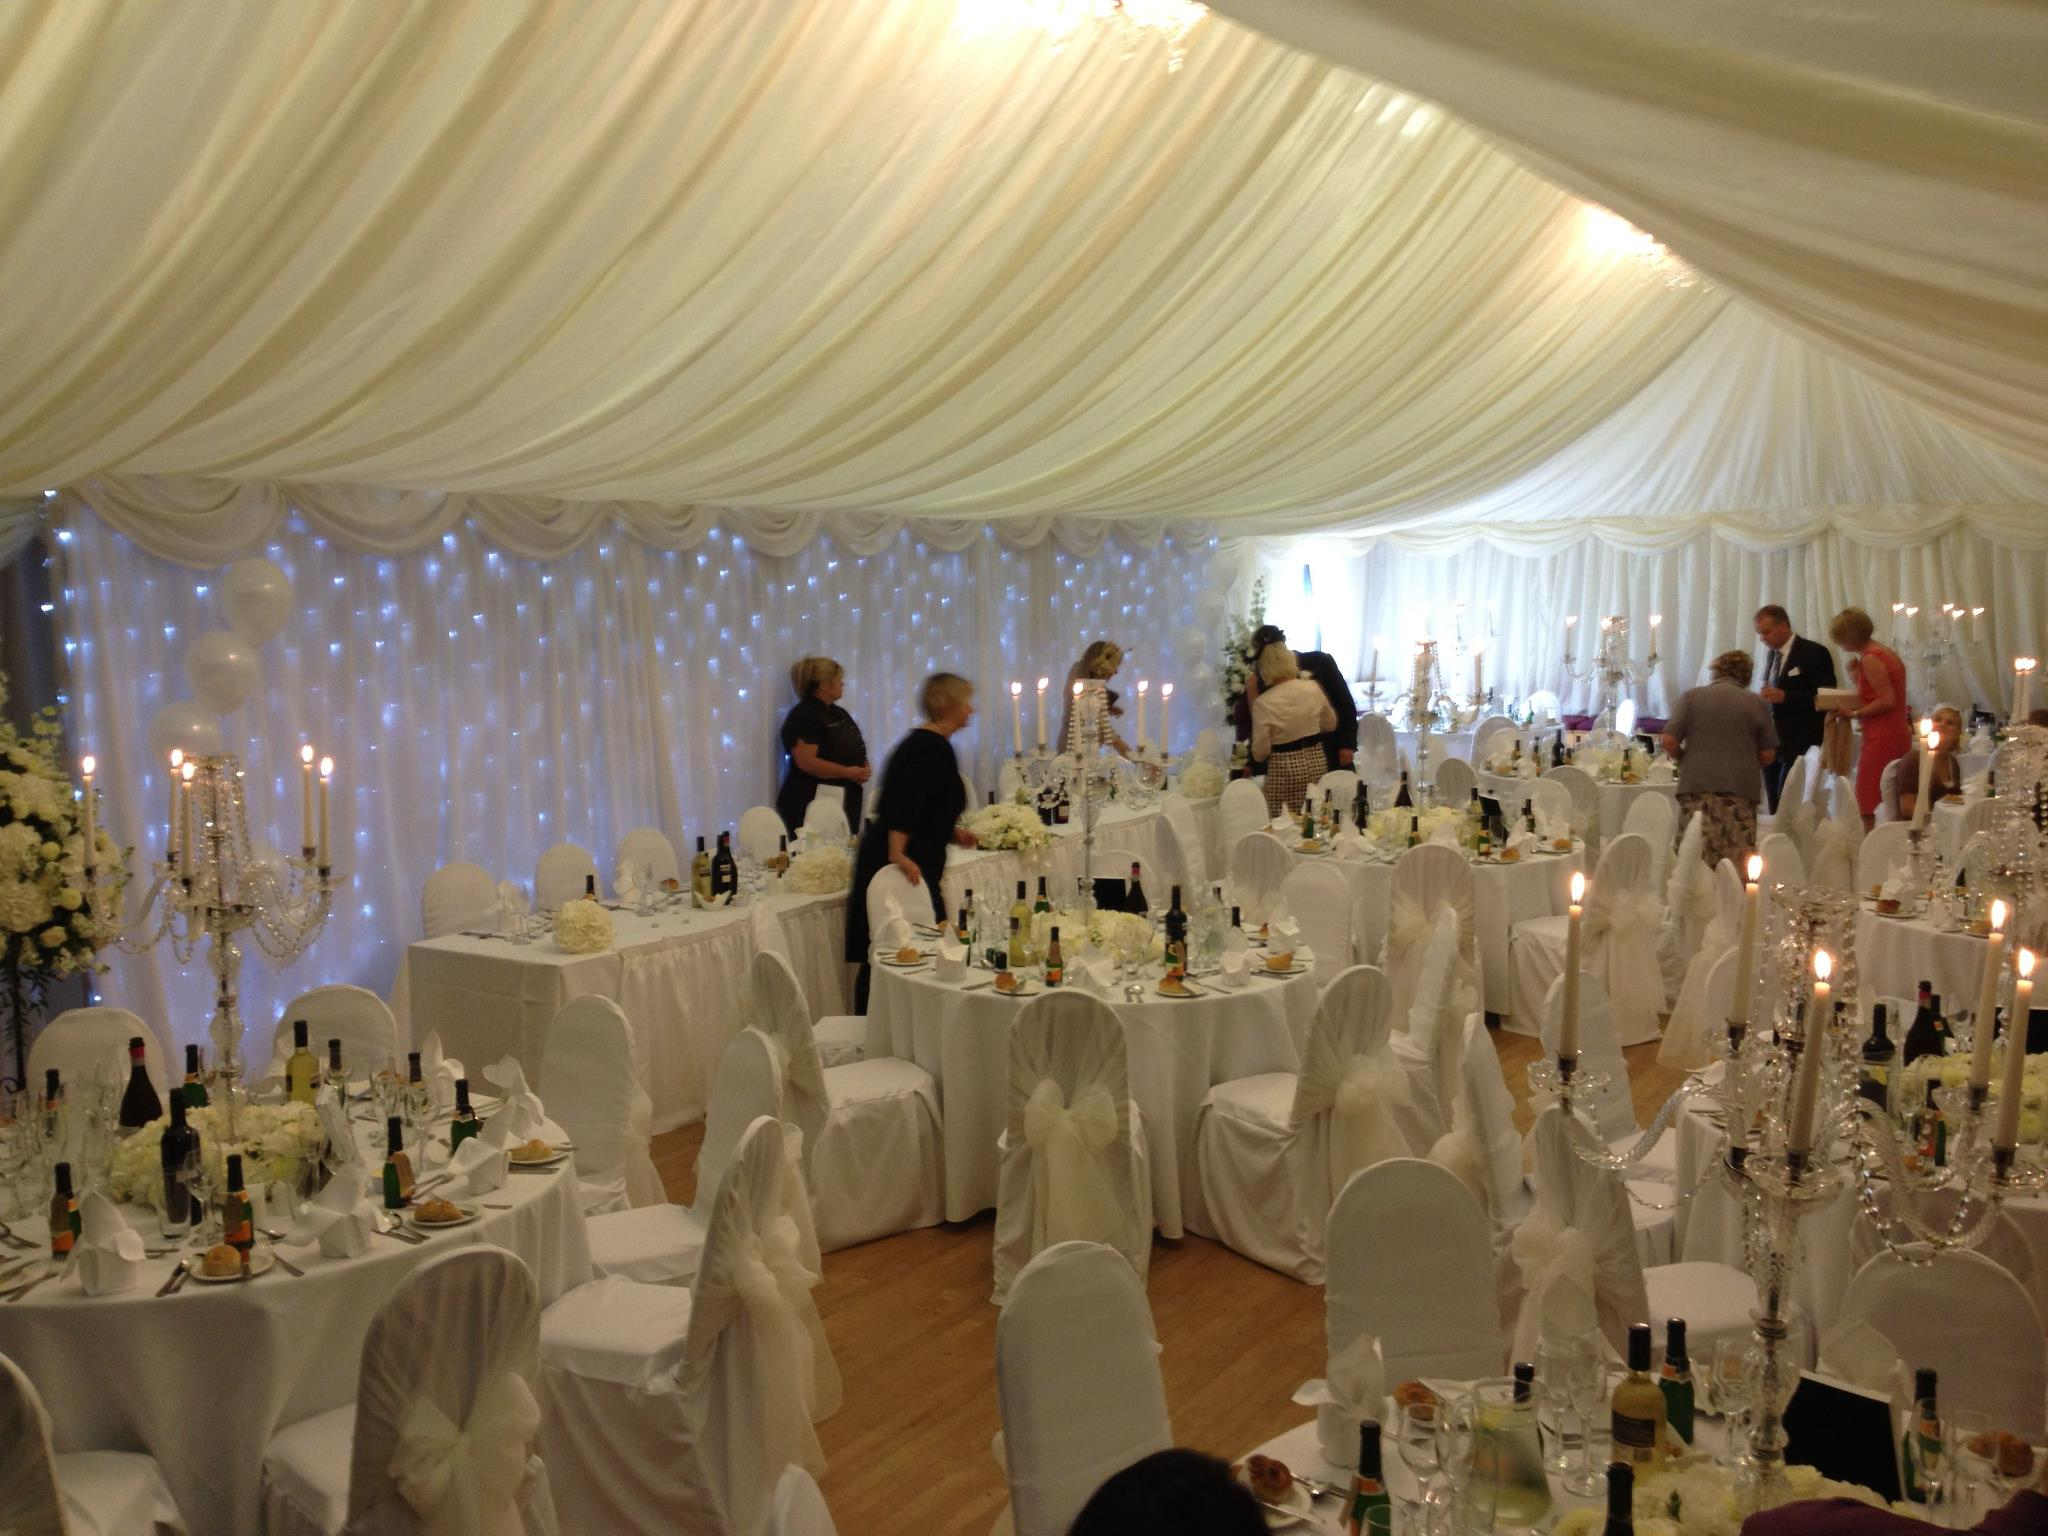 A Sparkling Theme At Ashover Parish Hall Wedding Venue